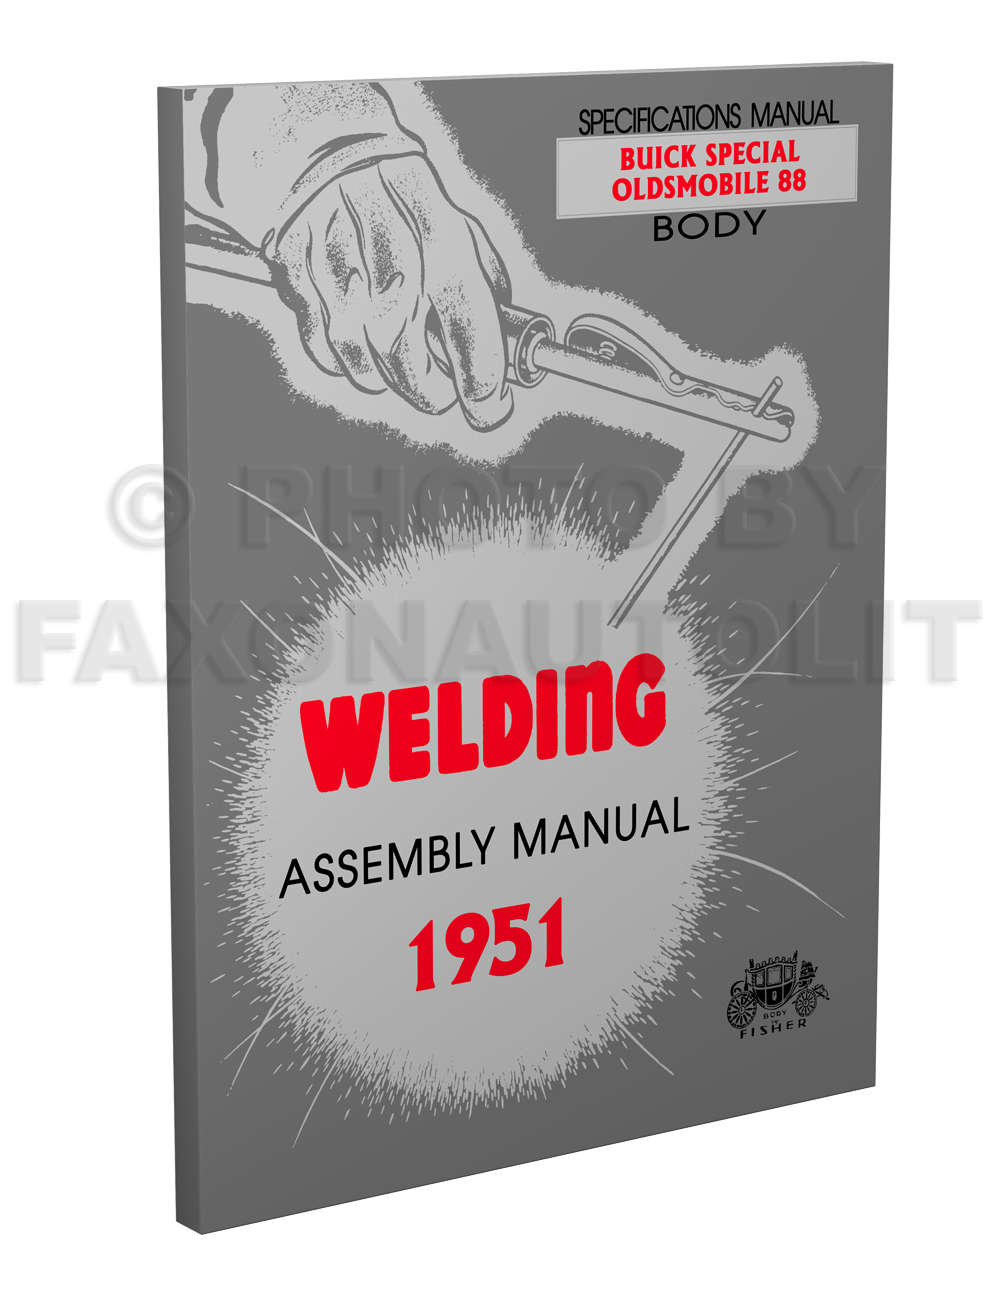 1951 Fisher Body Welding Assembly Manual Reprint - Oldsmobile Super 88 Buick Special